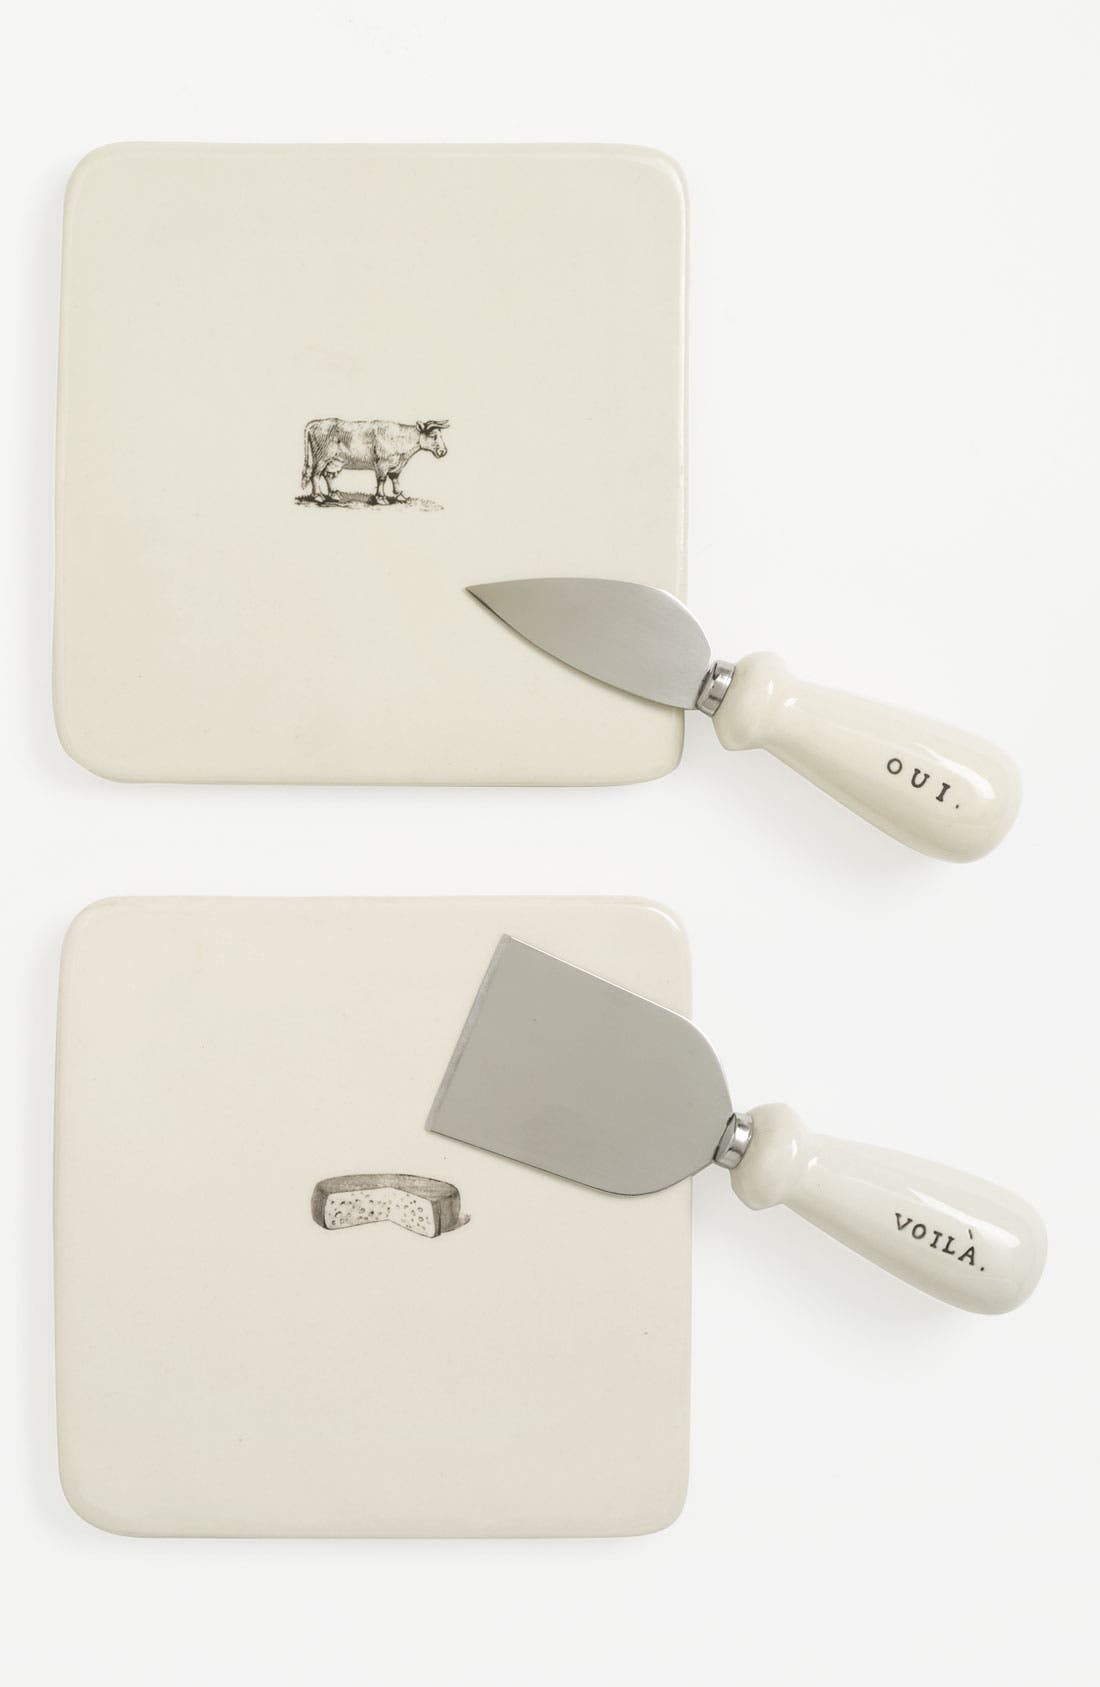 Alternate Image 1 Selected - Rae Dunn by Magenta 'Say Cheese' Plate & Knife (Set of 2)